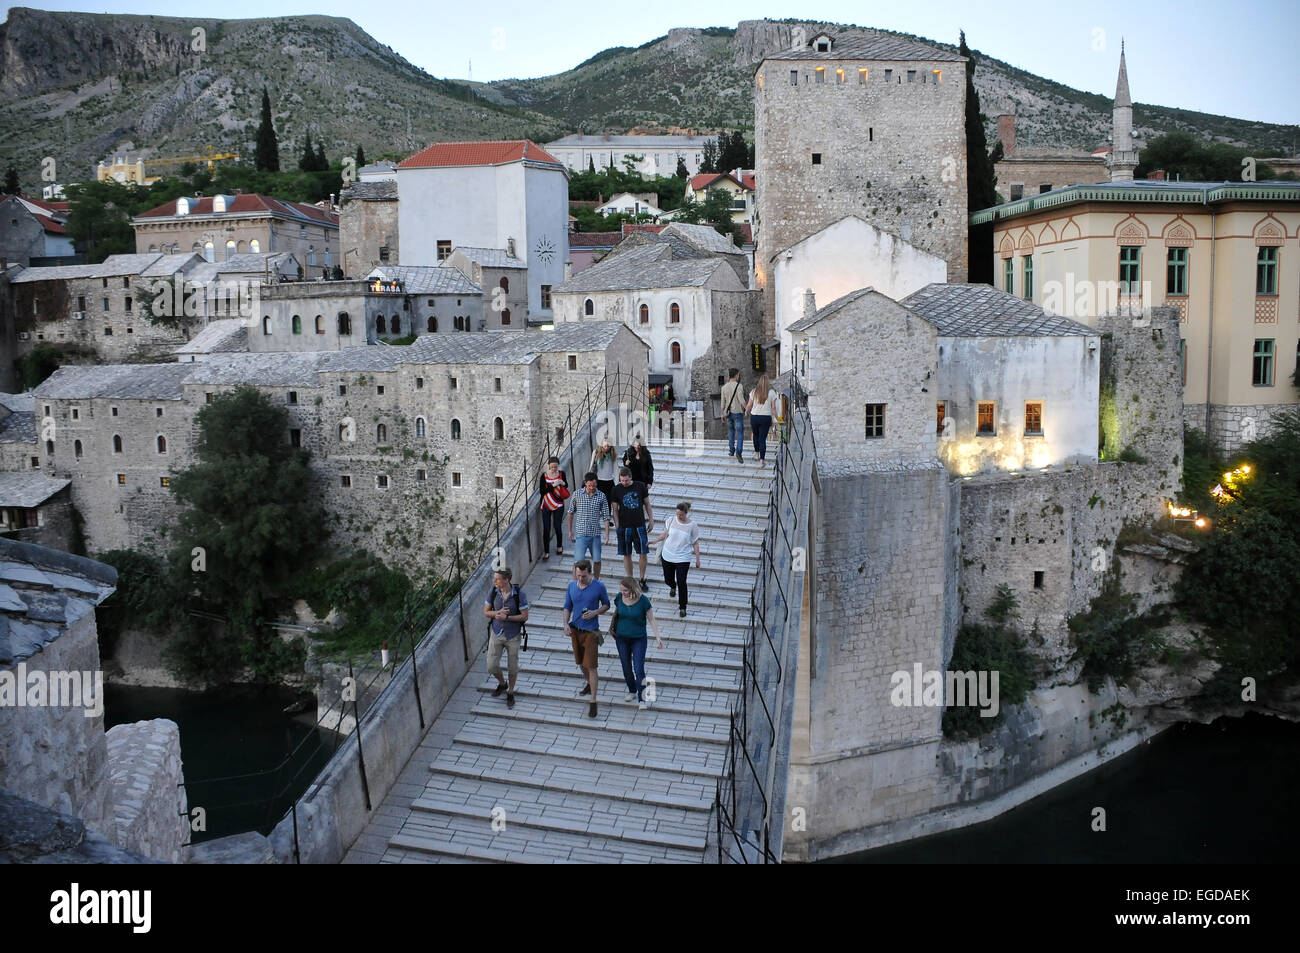 At the old bridge, Mostar, Bosnia and Herzegovina - Stock Image